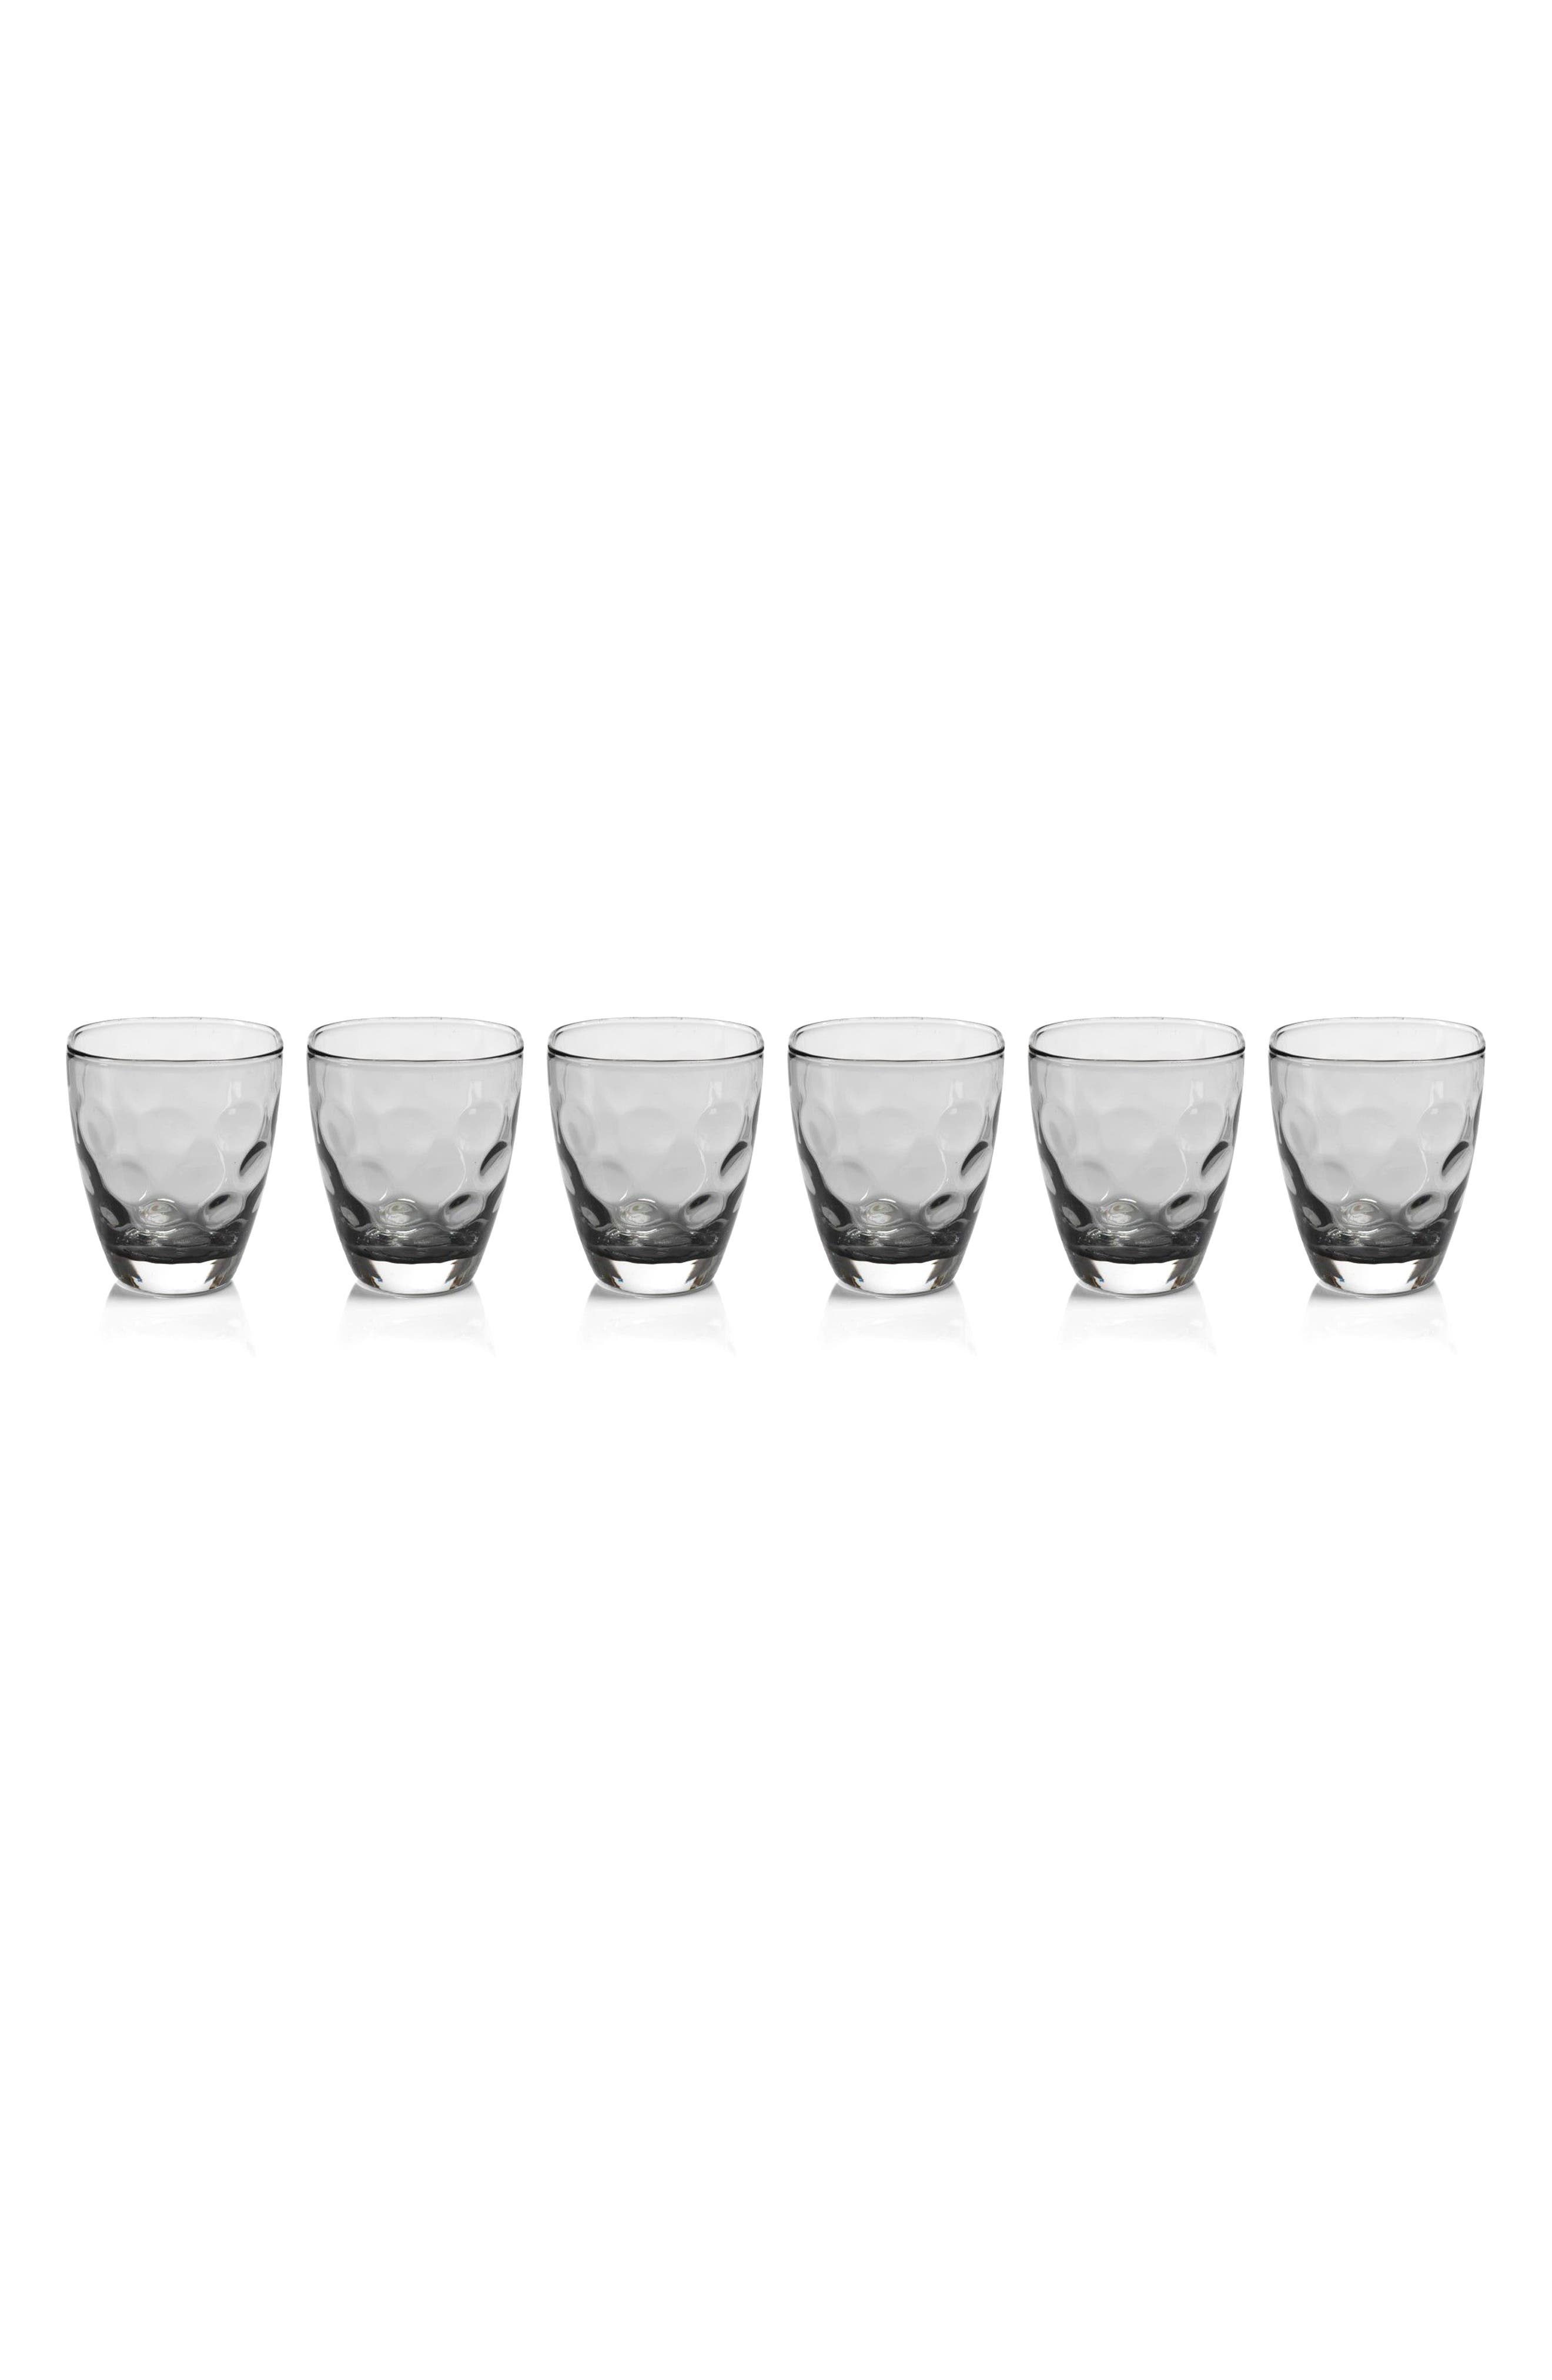 Dimpled Set of 6 Double Old Fashioned Glasses,                         Main,                         color, 100